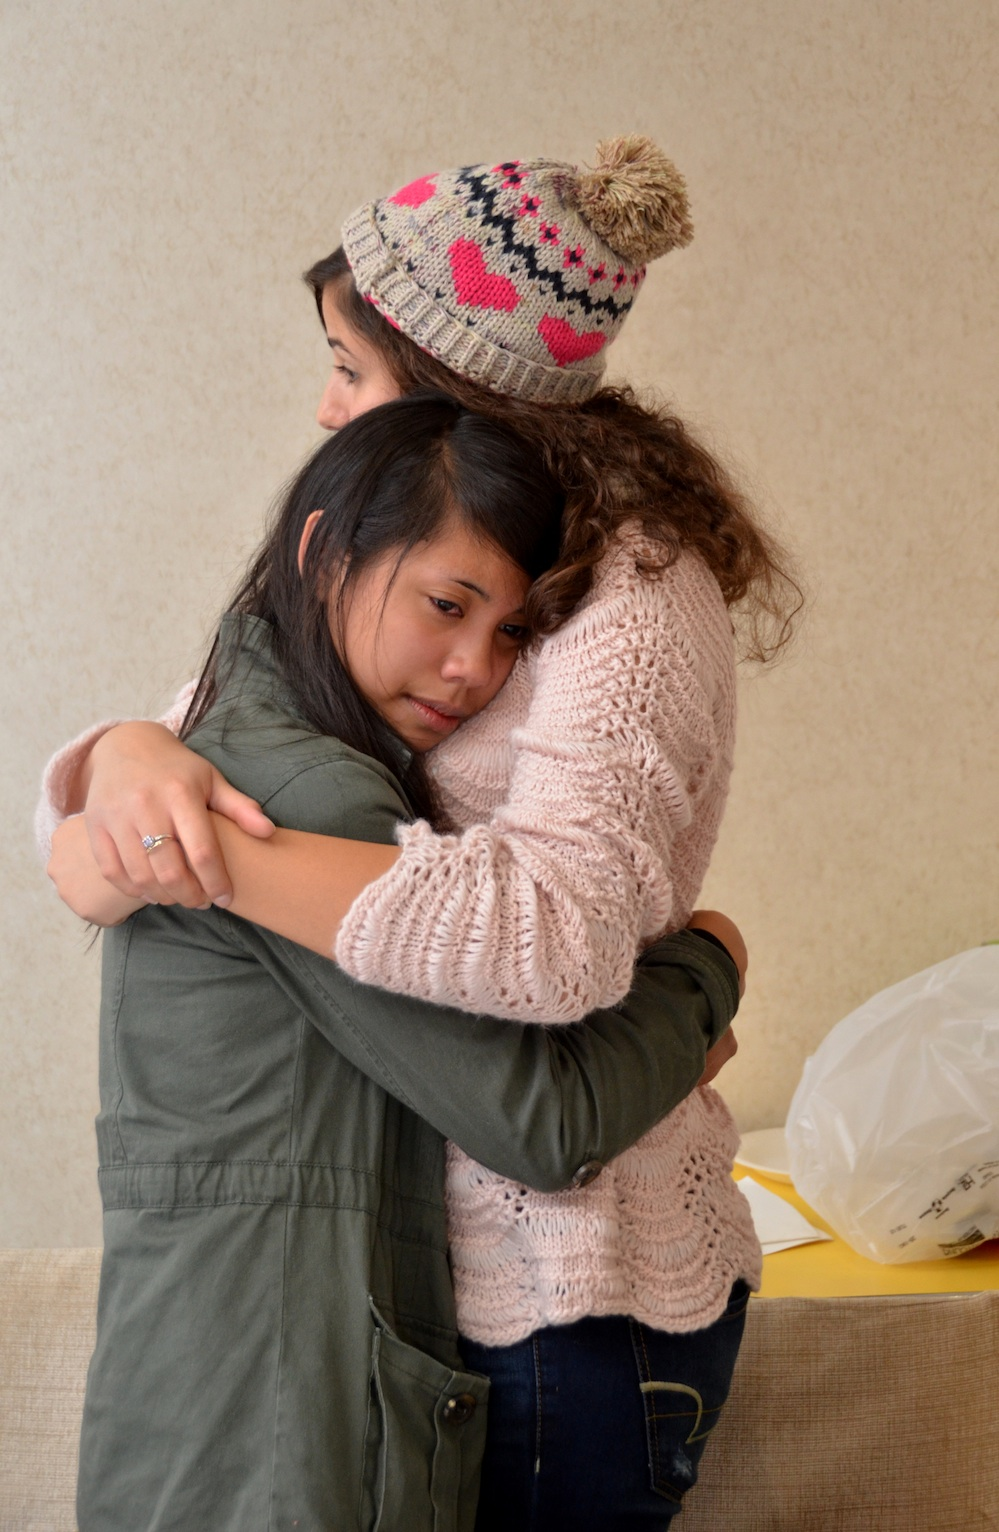 Click photo to download. Caption: Emotions ran high at the Youth Ambassadors Student Exchange (YASE) farewell luncheon in New York earlier this month. After two weeks of studying, traveling, learning and experiencing Hurricane Sandy together, lifelong friendships began to grow. Credit: Maxine Dovere.